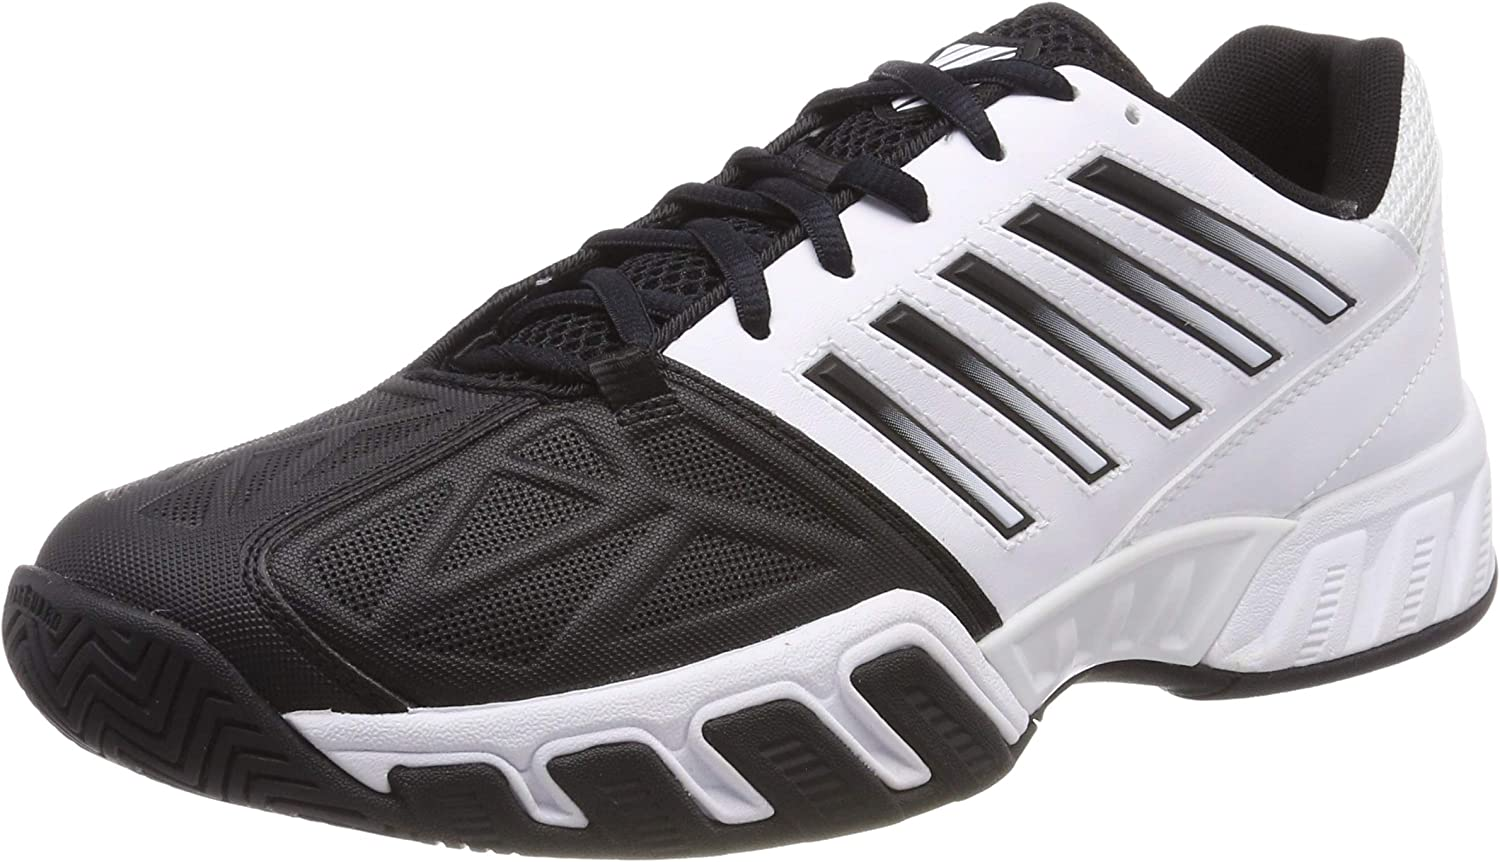 K-Swiss Performance Bigshot Light 3, Zapatillas de Tenis para Hombre, Blanco (White/Black 129M), 44 EU